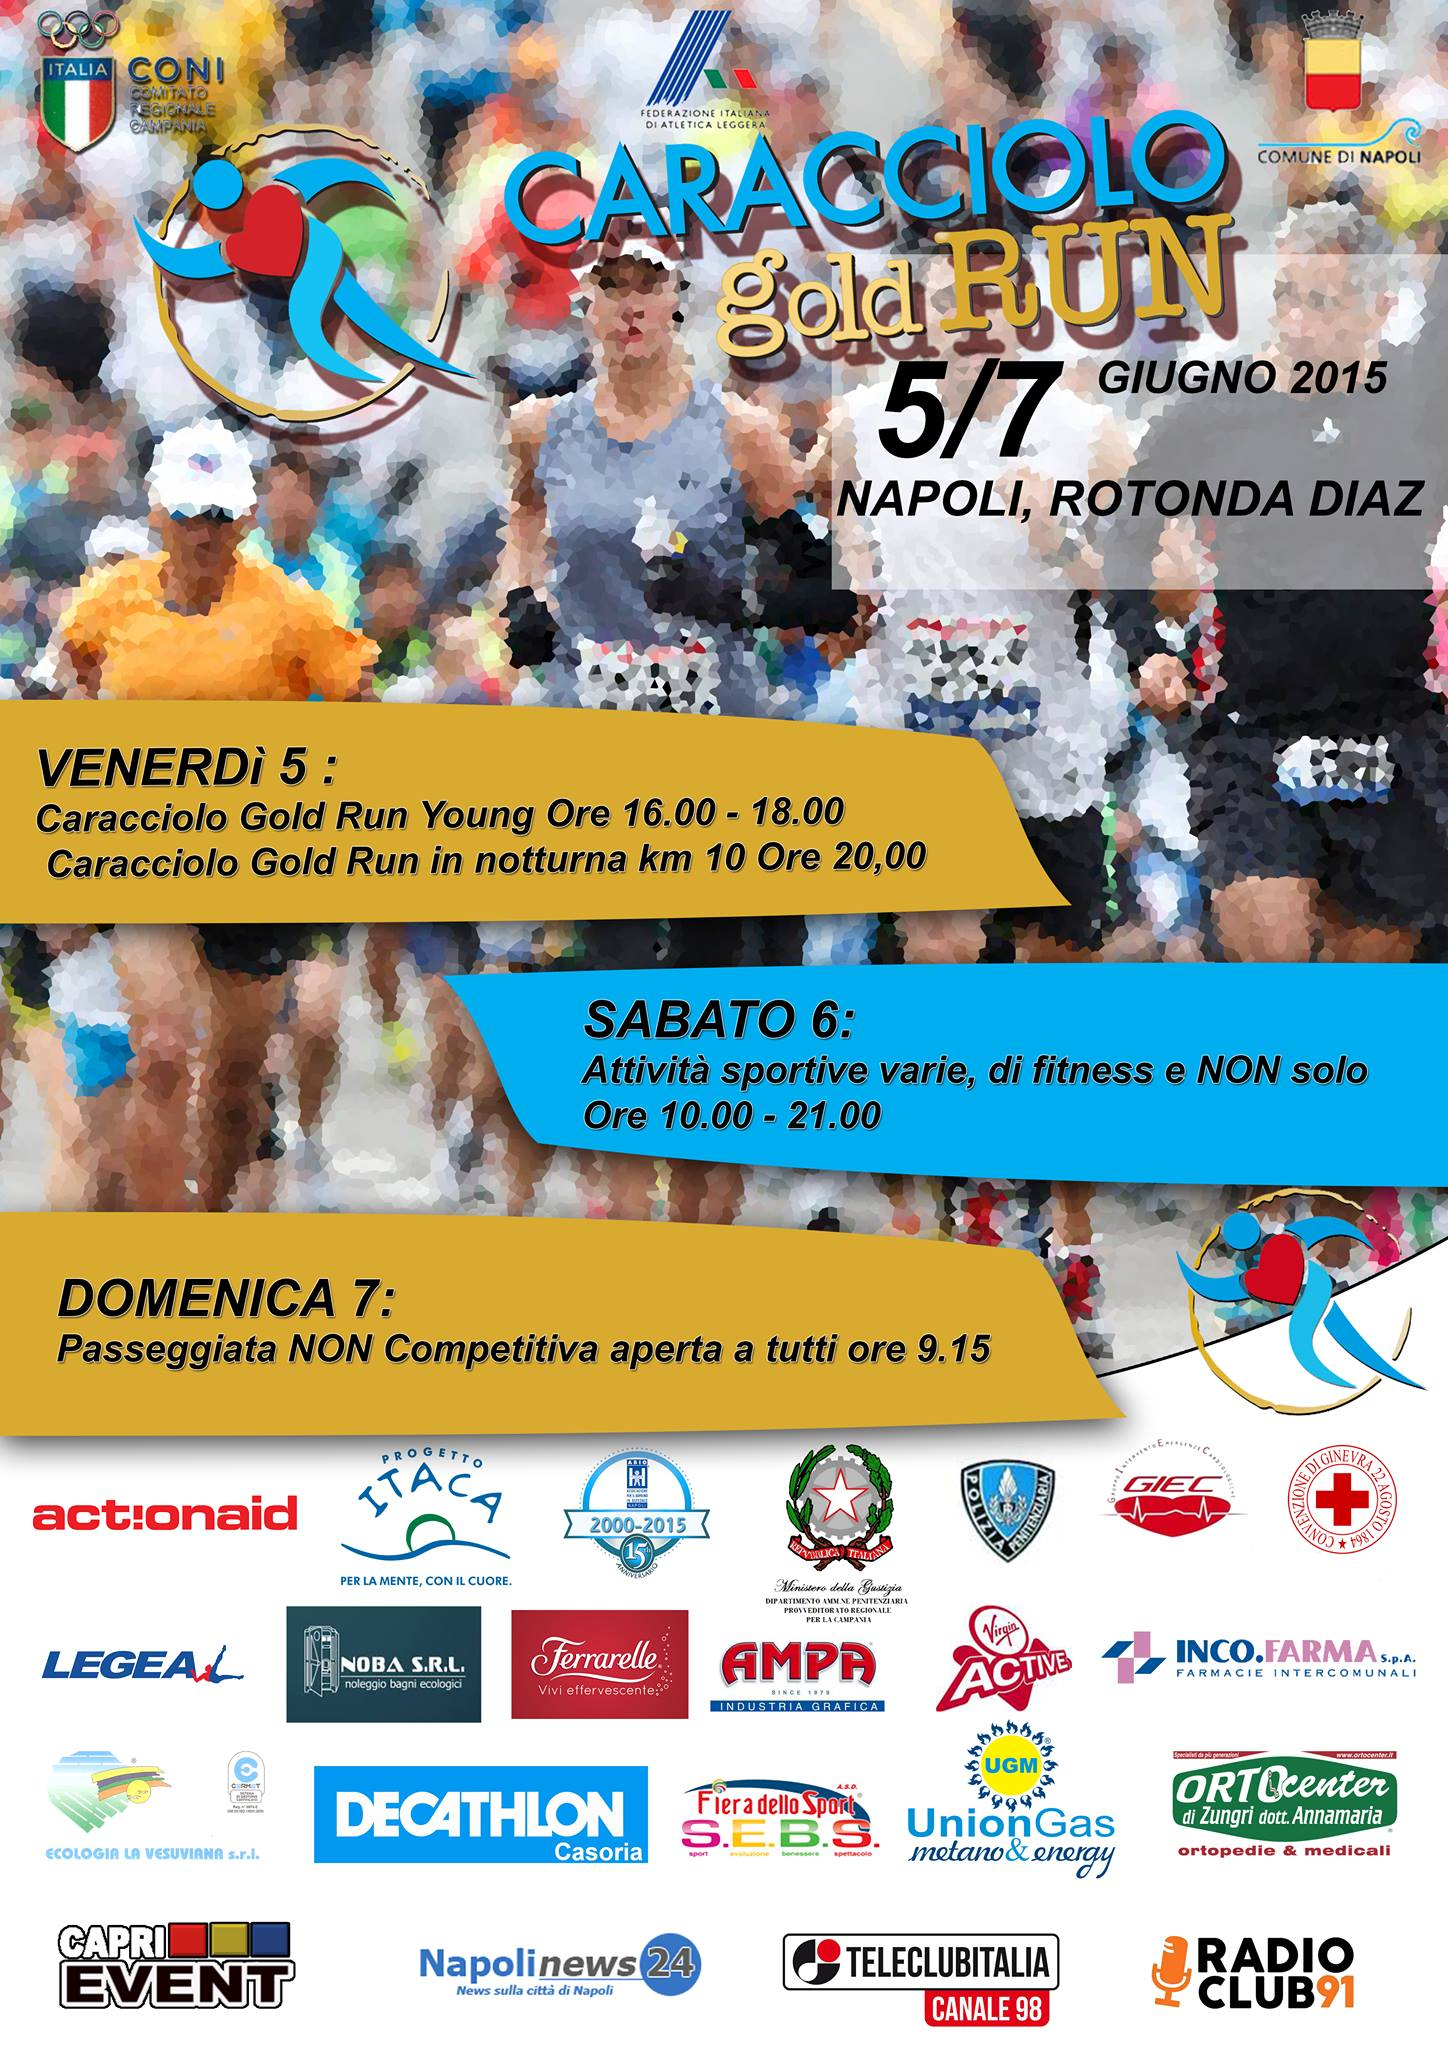 Caracciolo Gold Run 2015